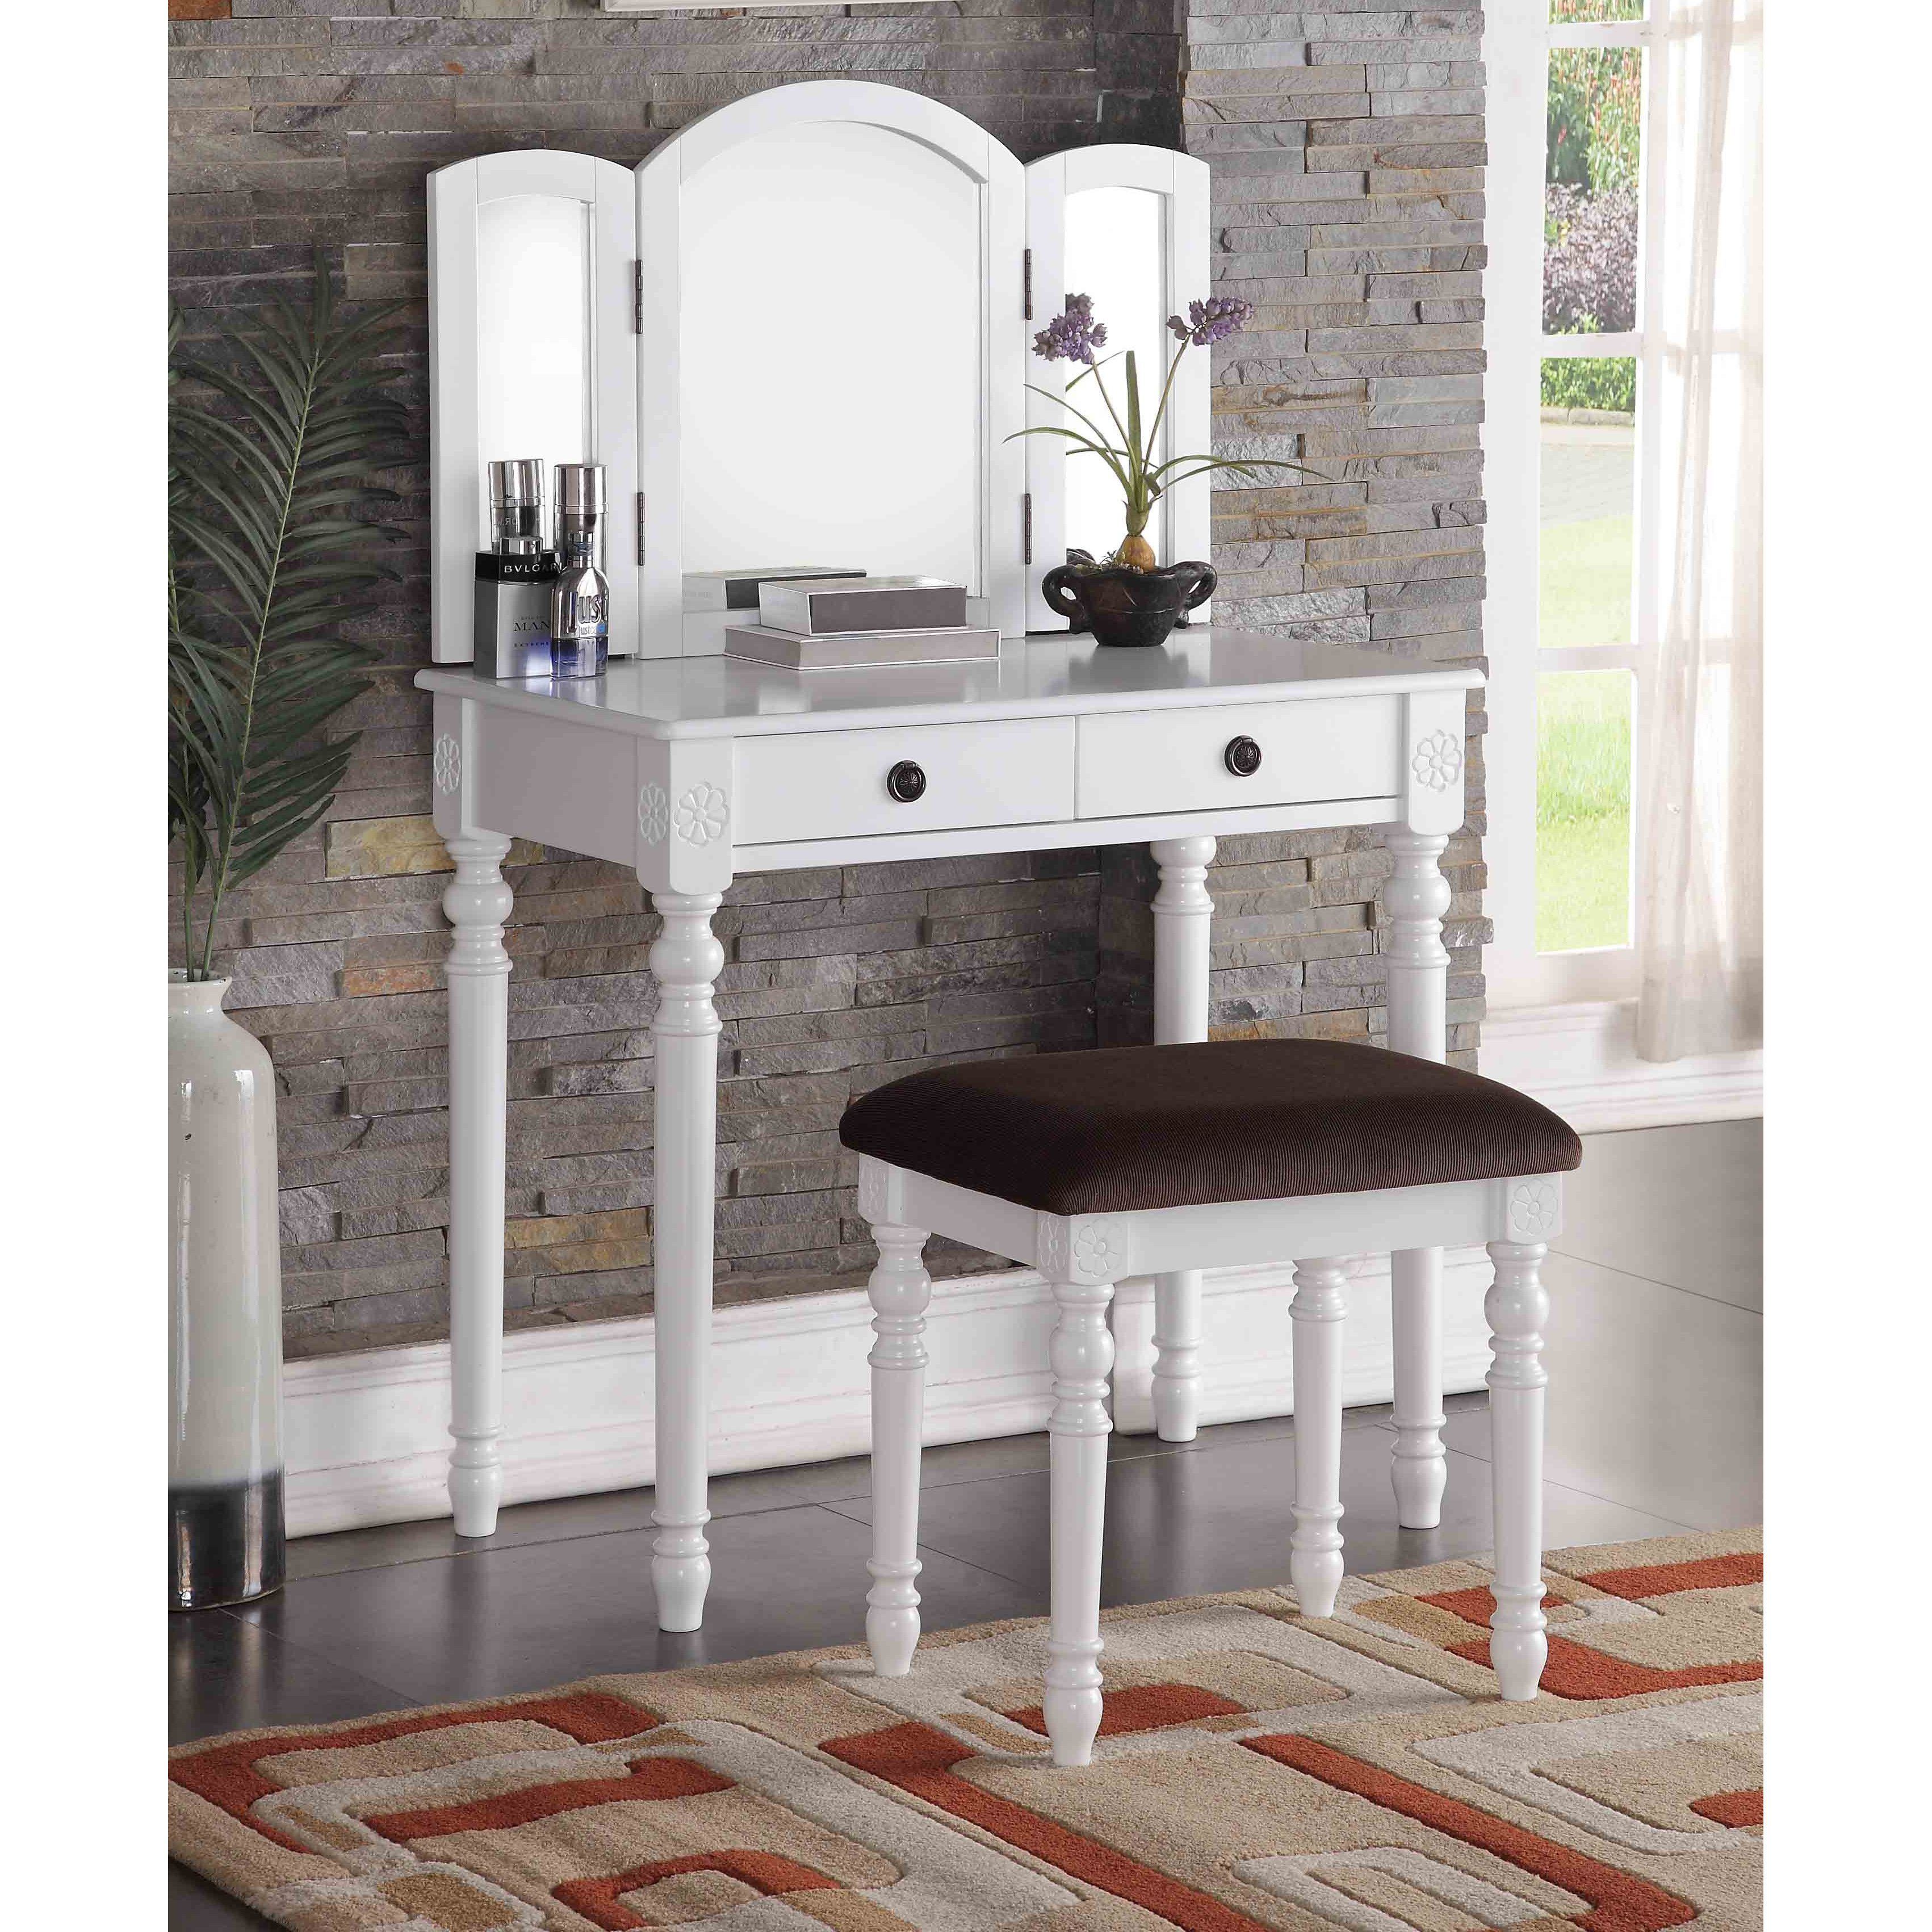 bedroom review makeup for of vanity design sets best ideas desk white womens modern picture